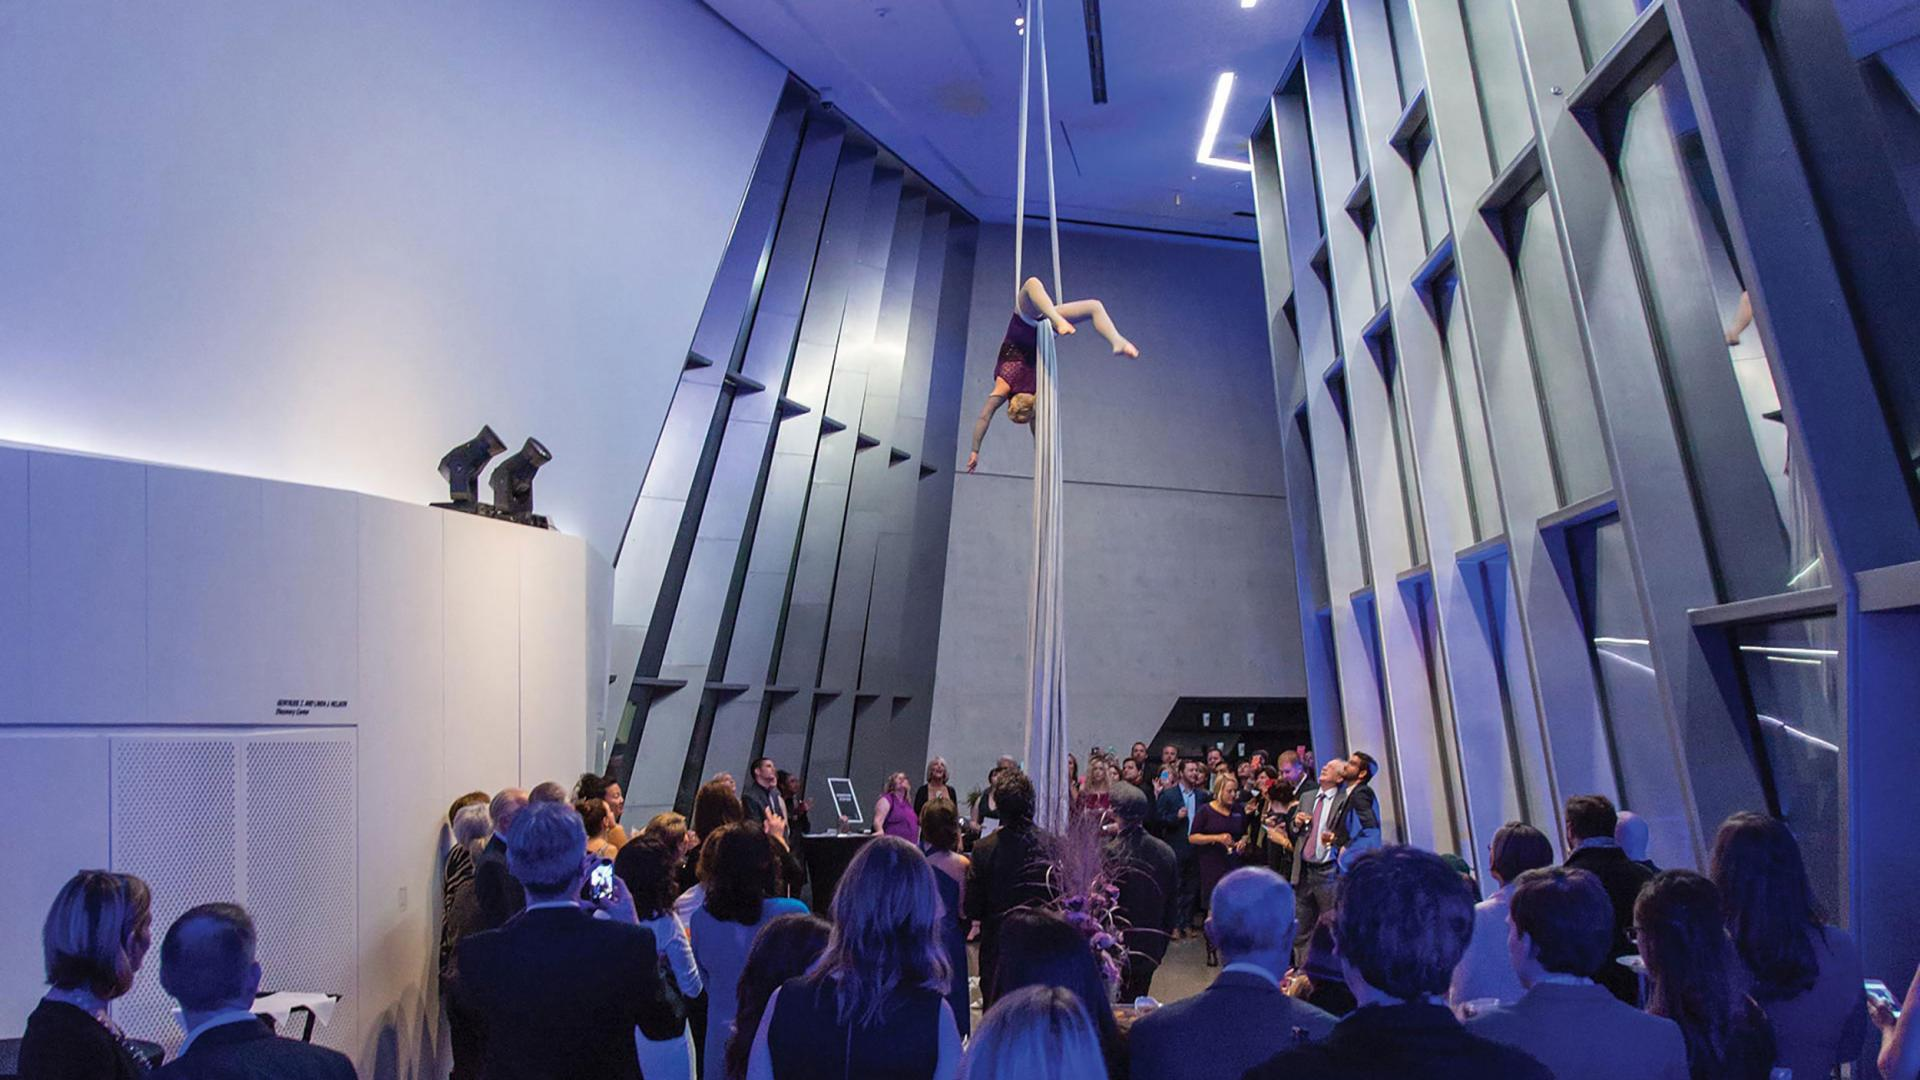 Crowd watching an aerialist perform